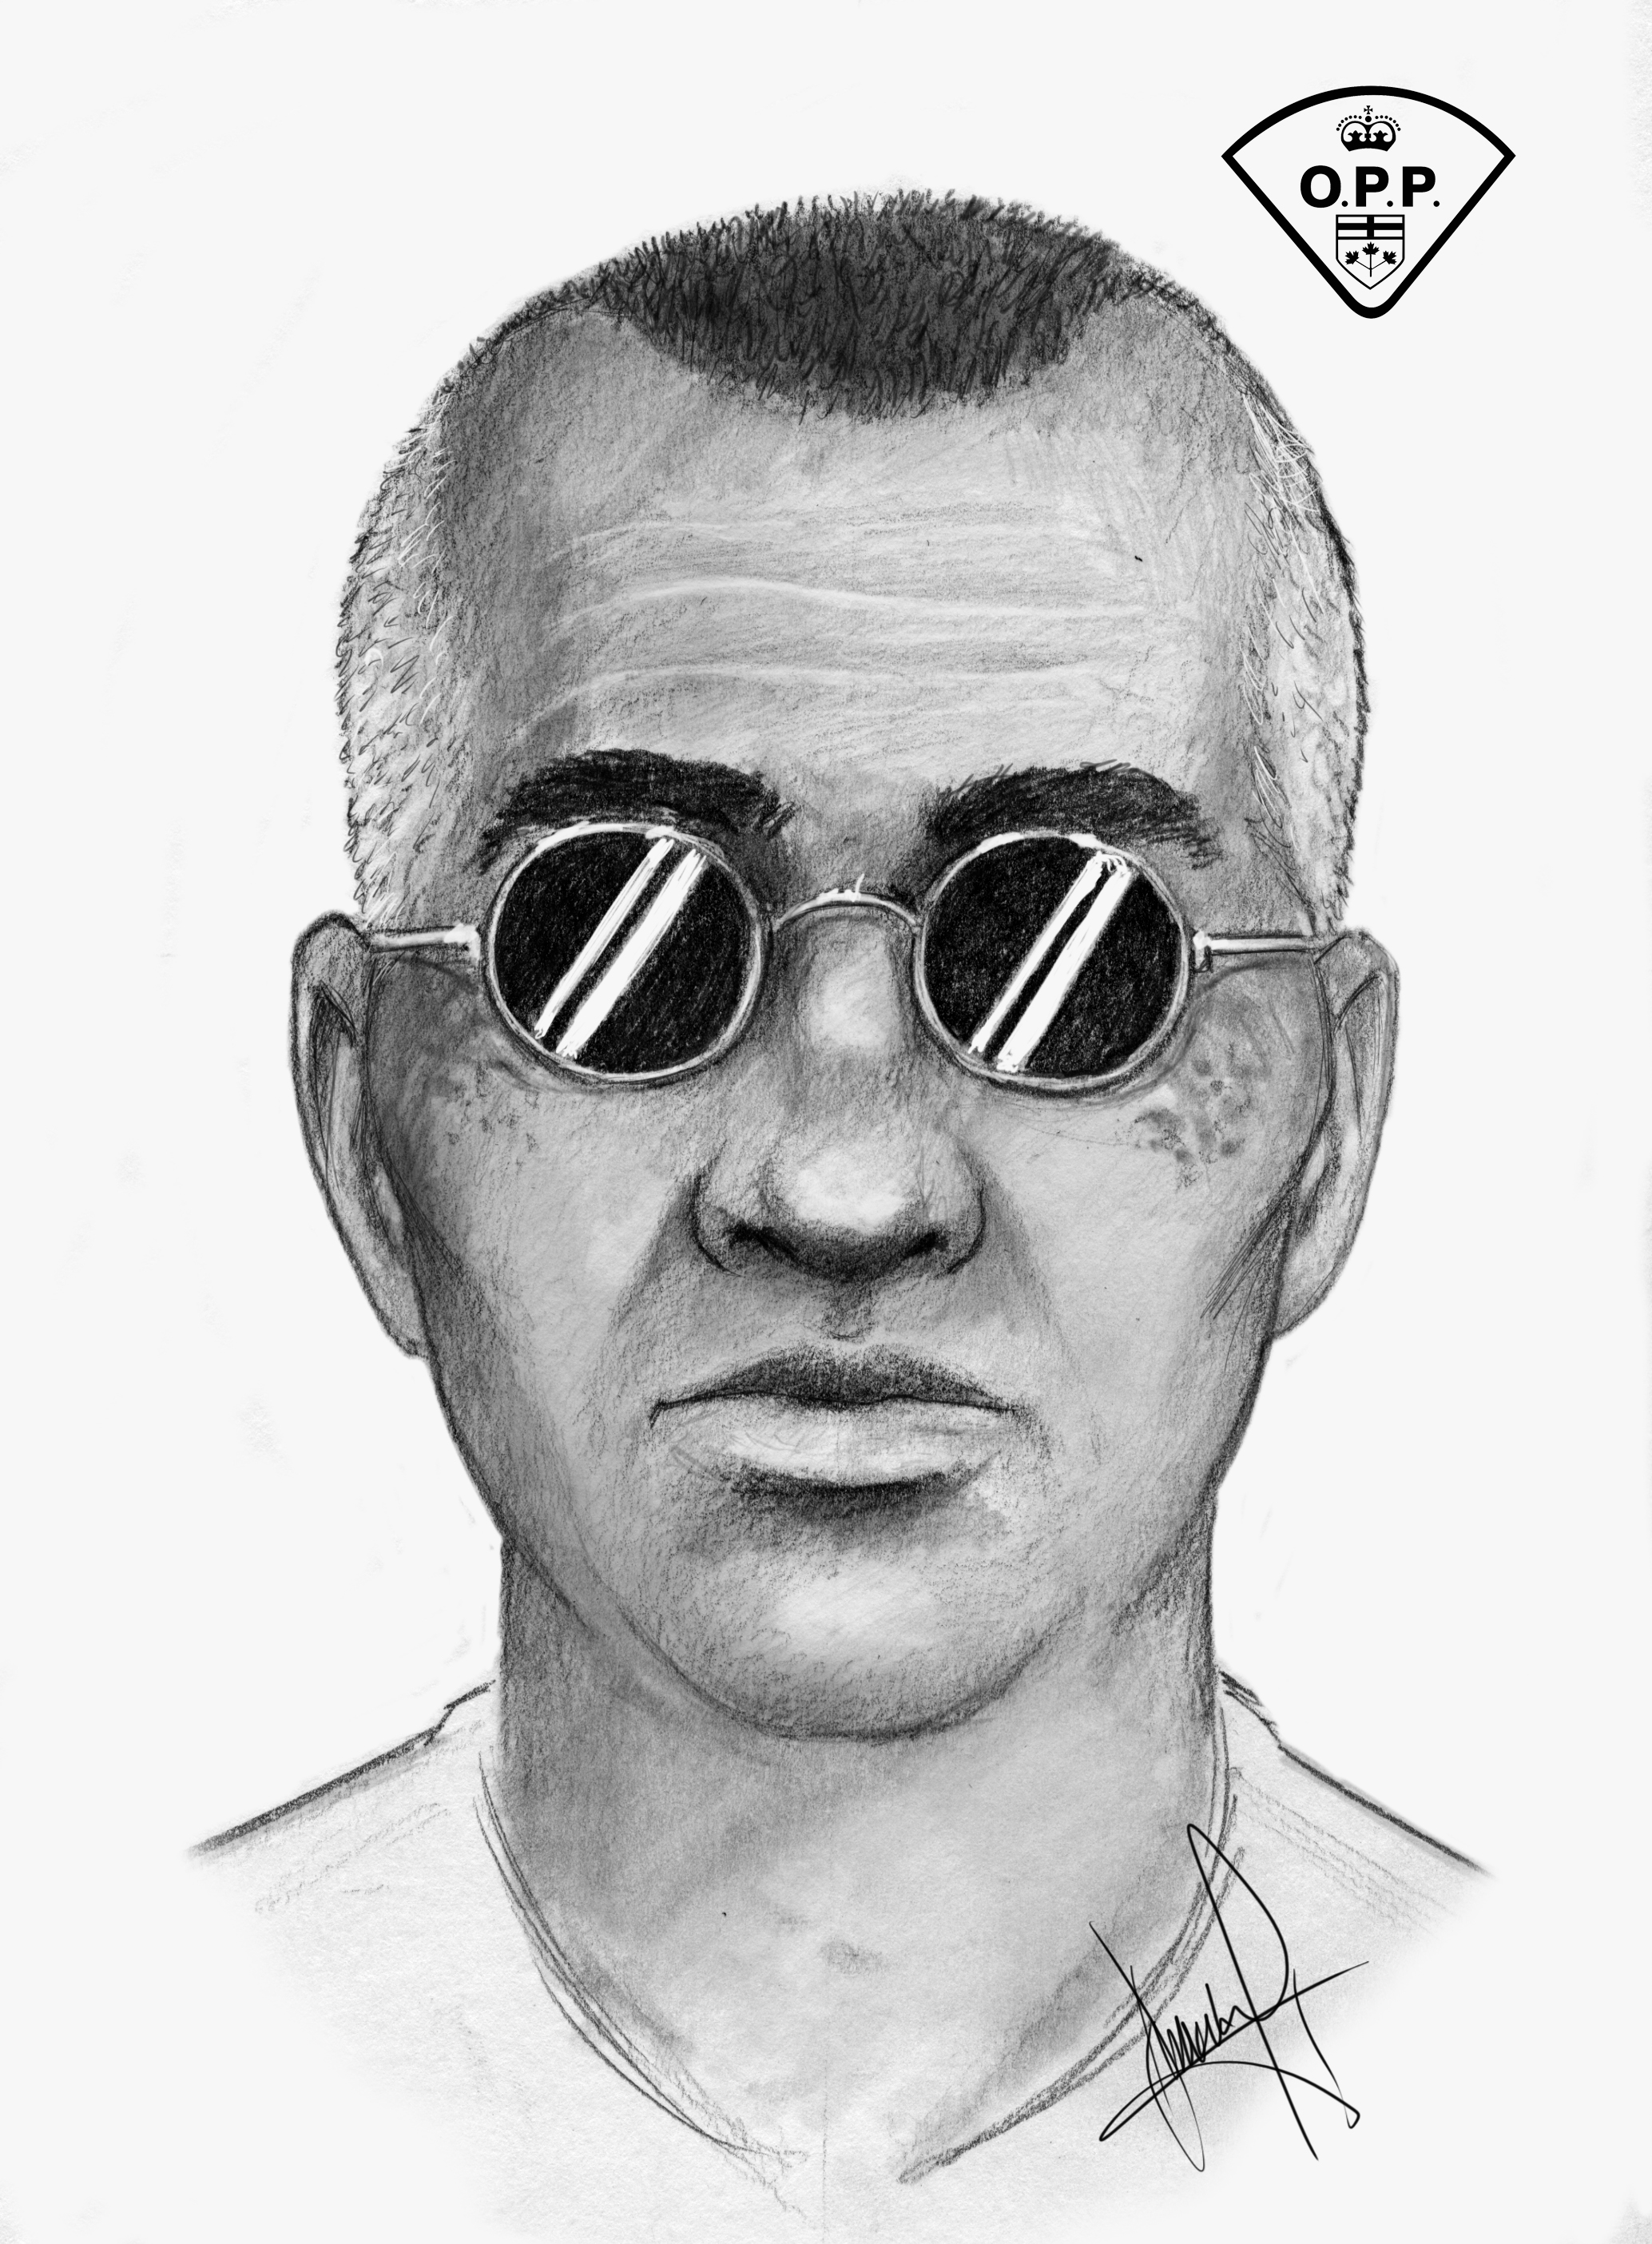 Suspect composite sketch OPP re Attempt Abduction